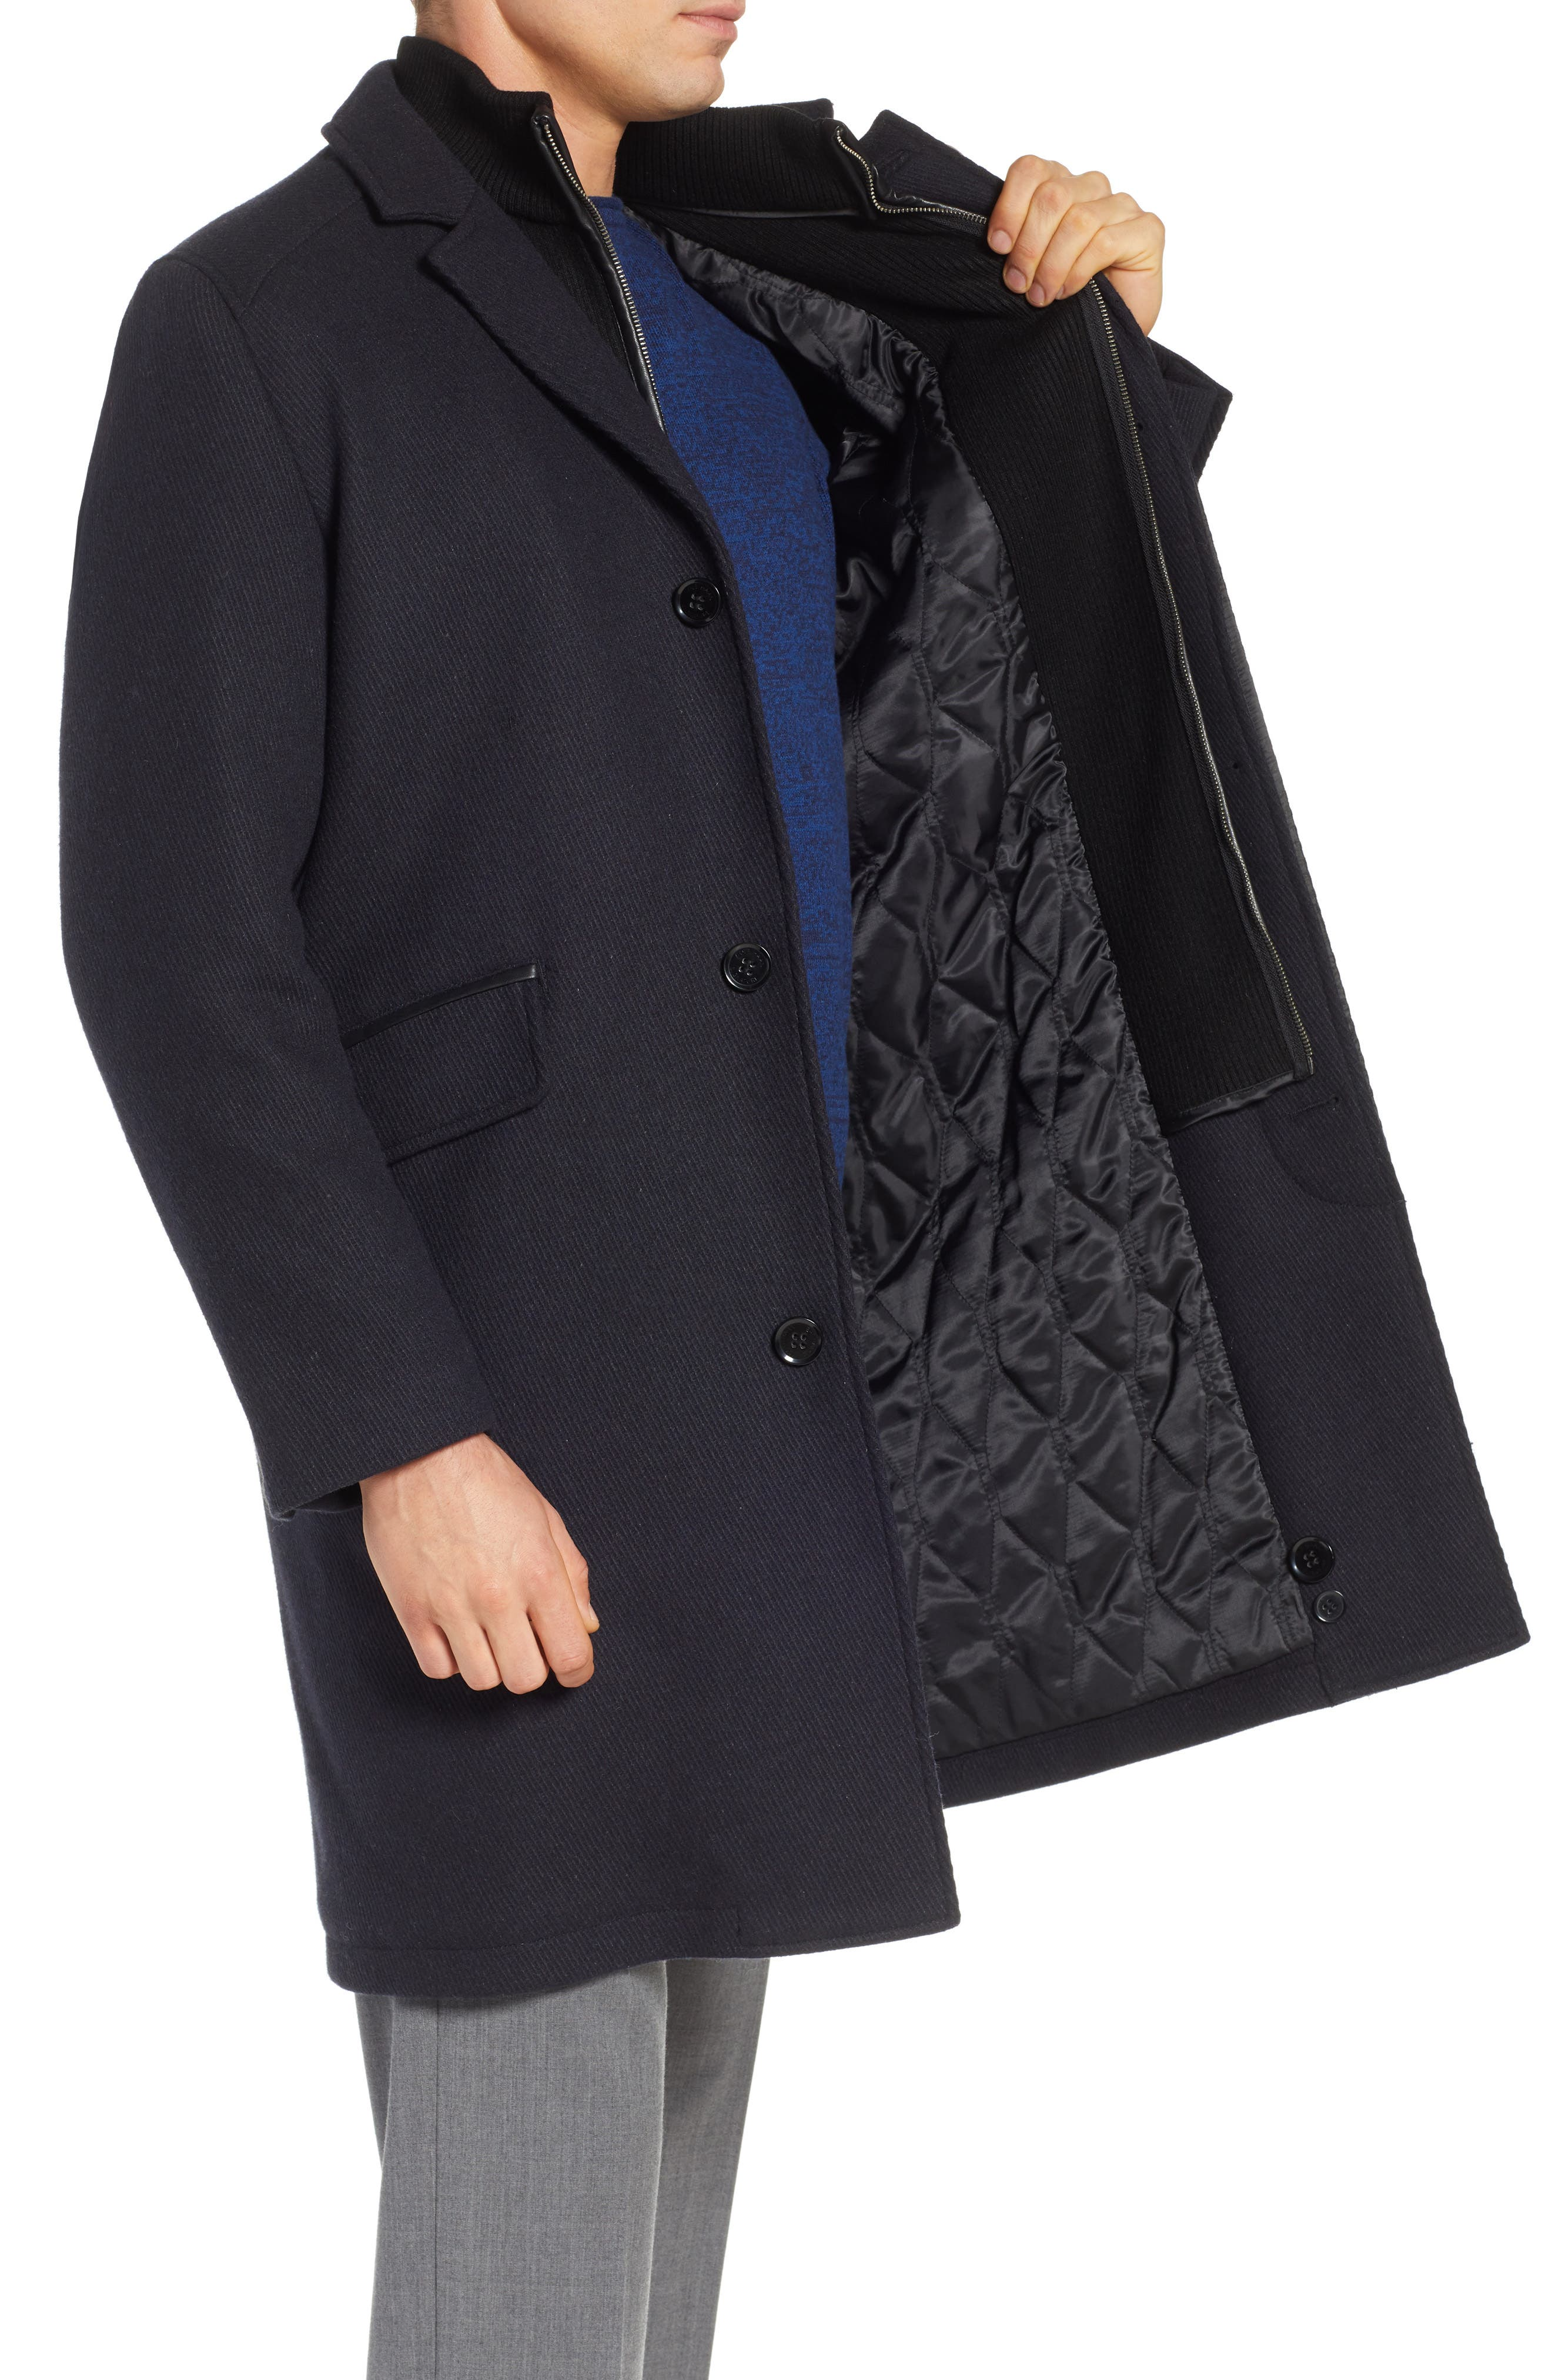 Wool Blend Overcoat with Knit Bib Inset,                             Alternate thumbnail 3, color,                             410